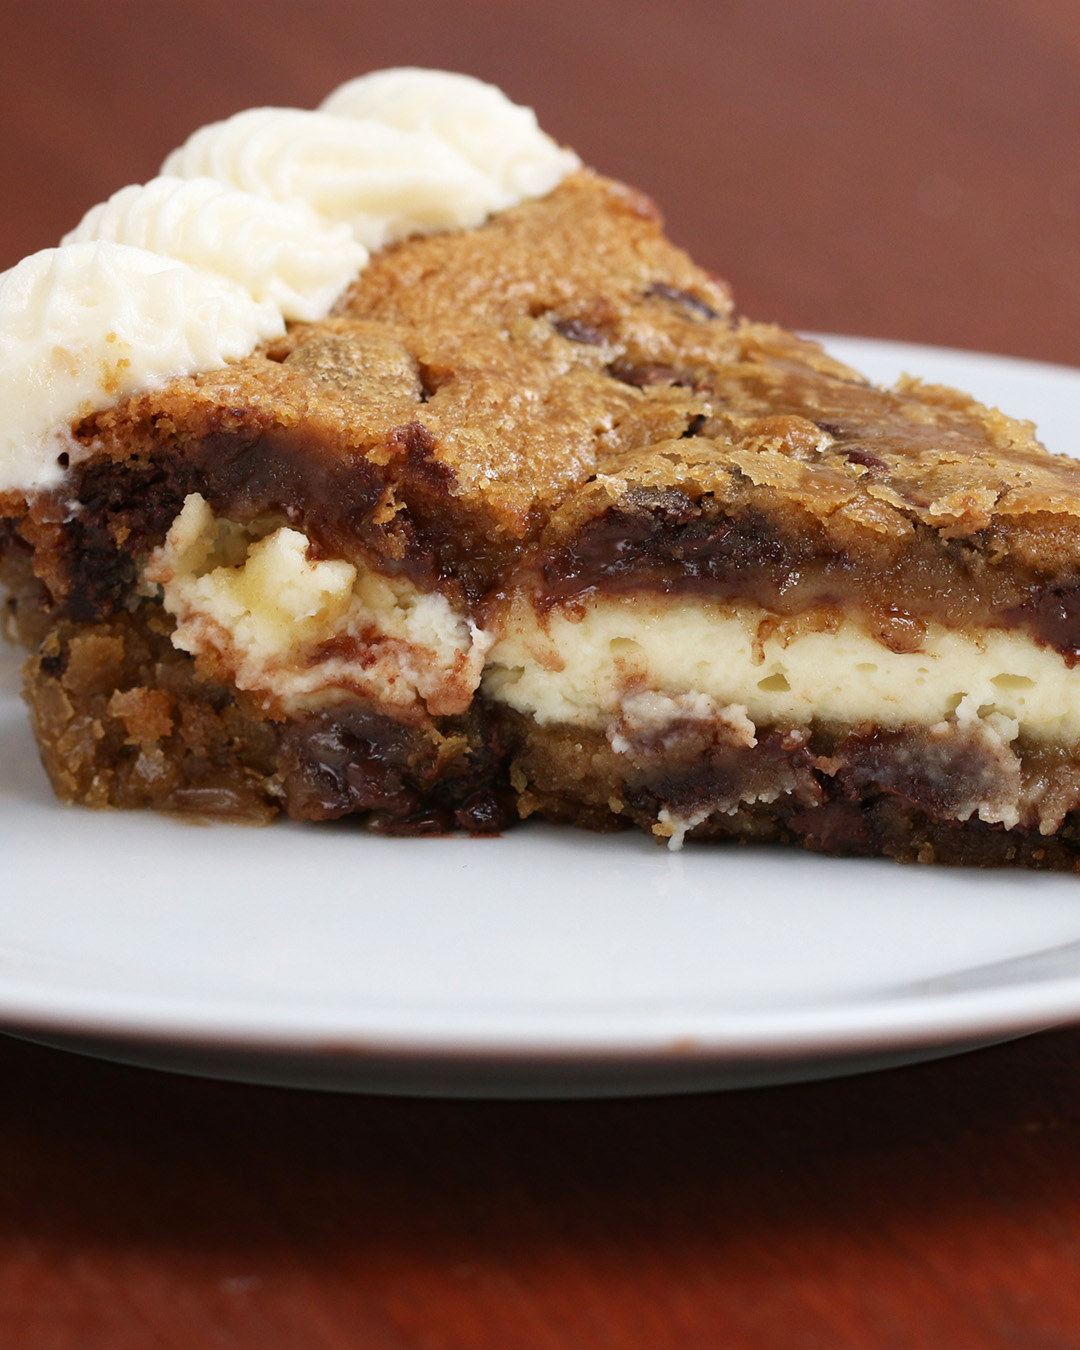 Wait A Minute, You Can Stuff A Cheesecake Into A Chocolate Chip Cookie